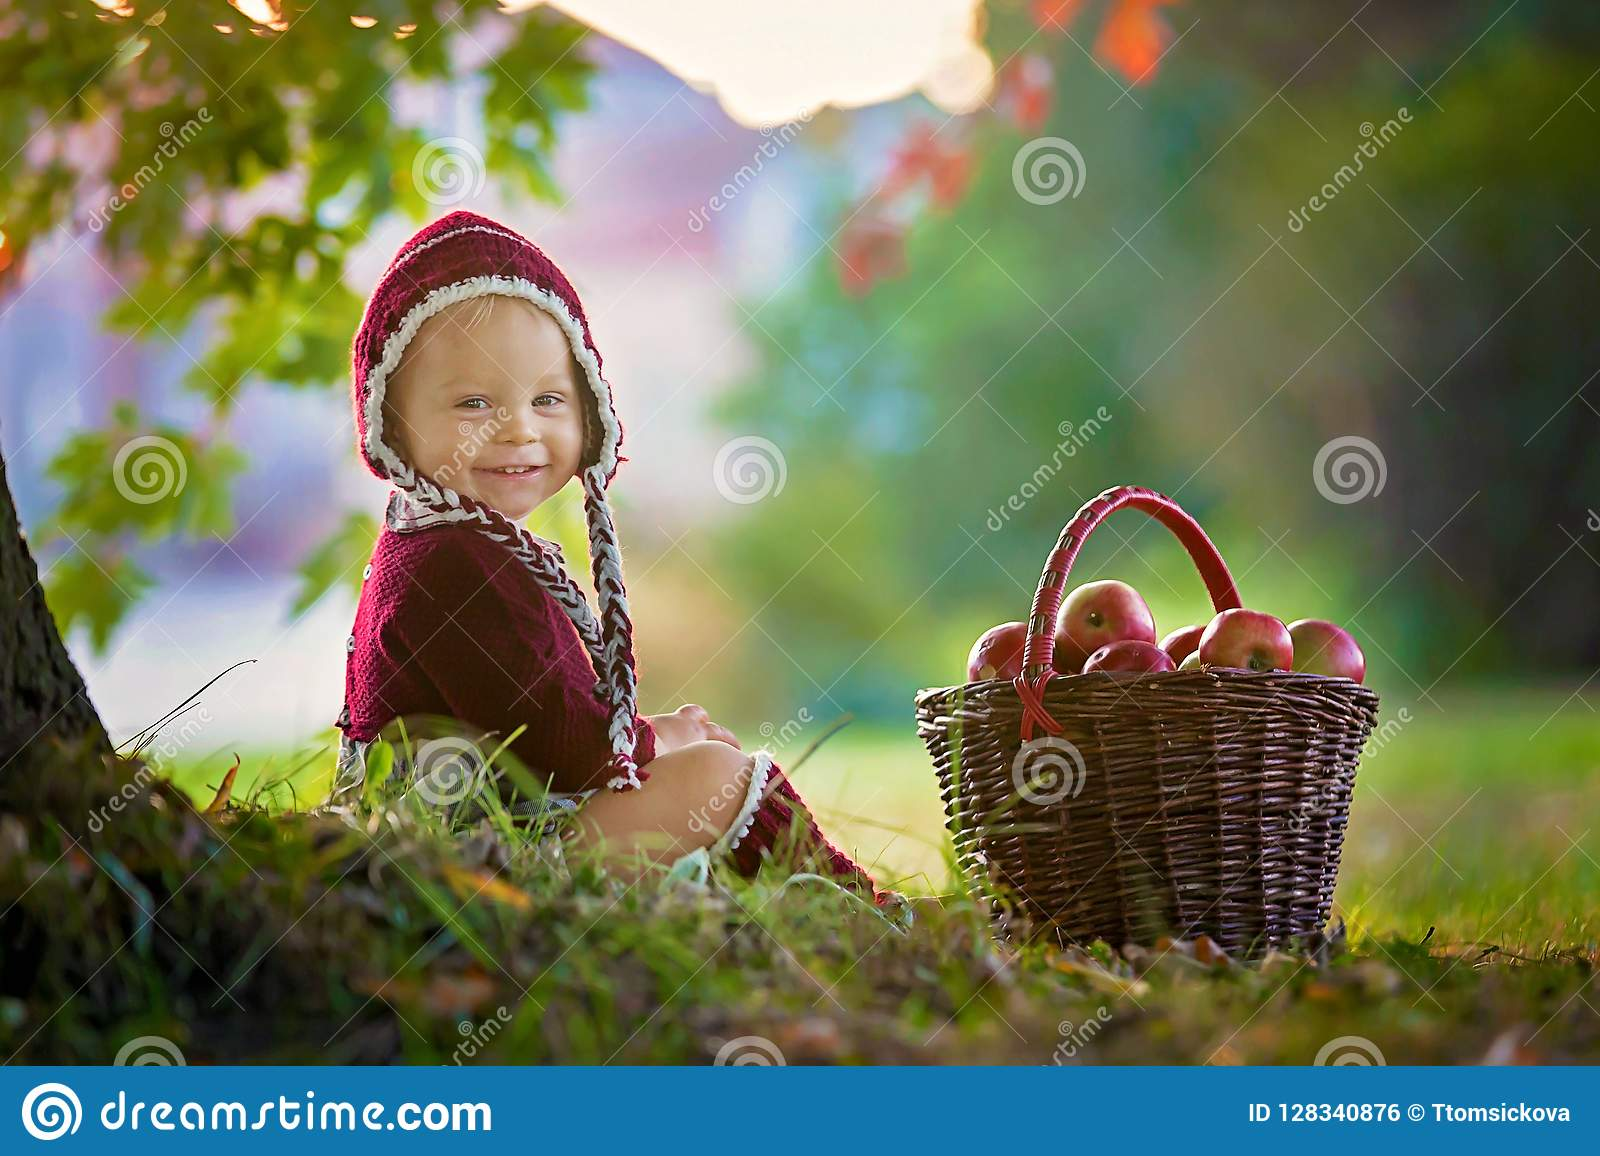 Child with apples in a village in autumn.